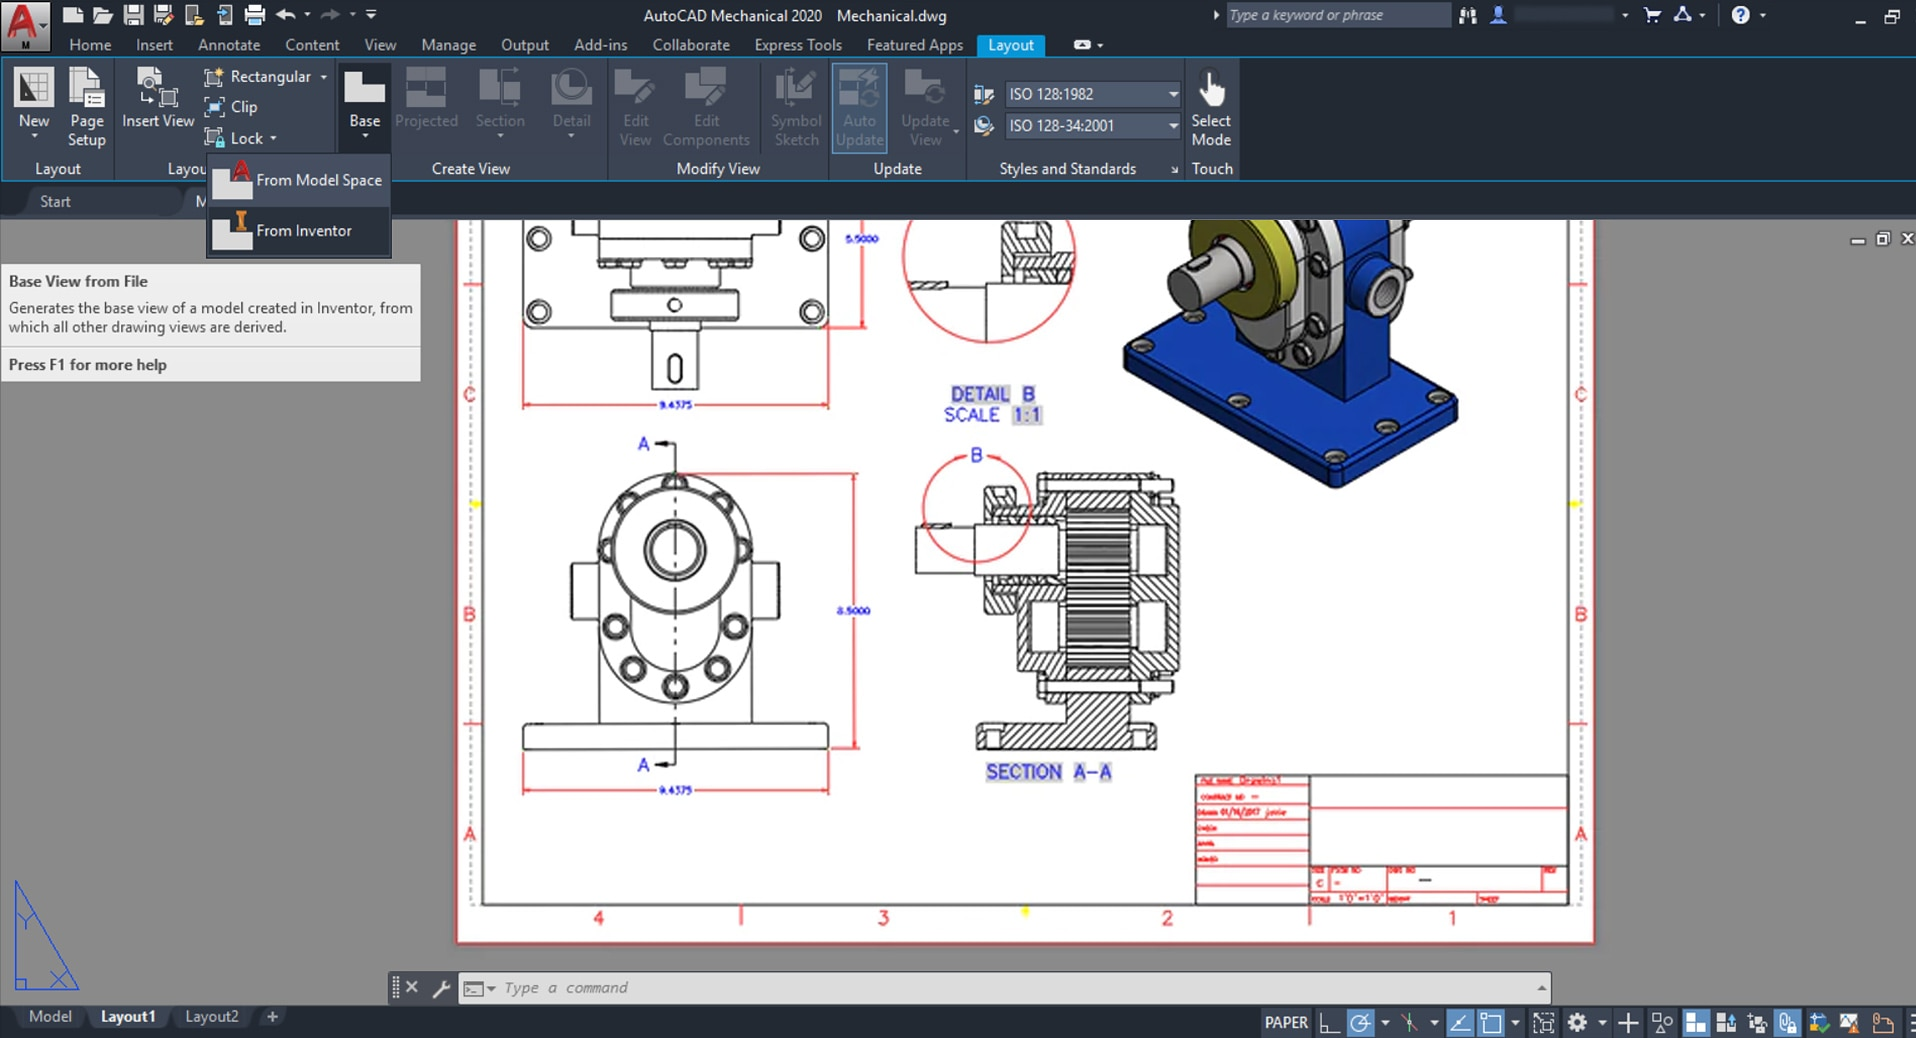 autocad u00ae mechanical